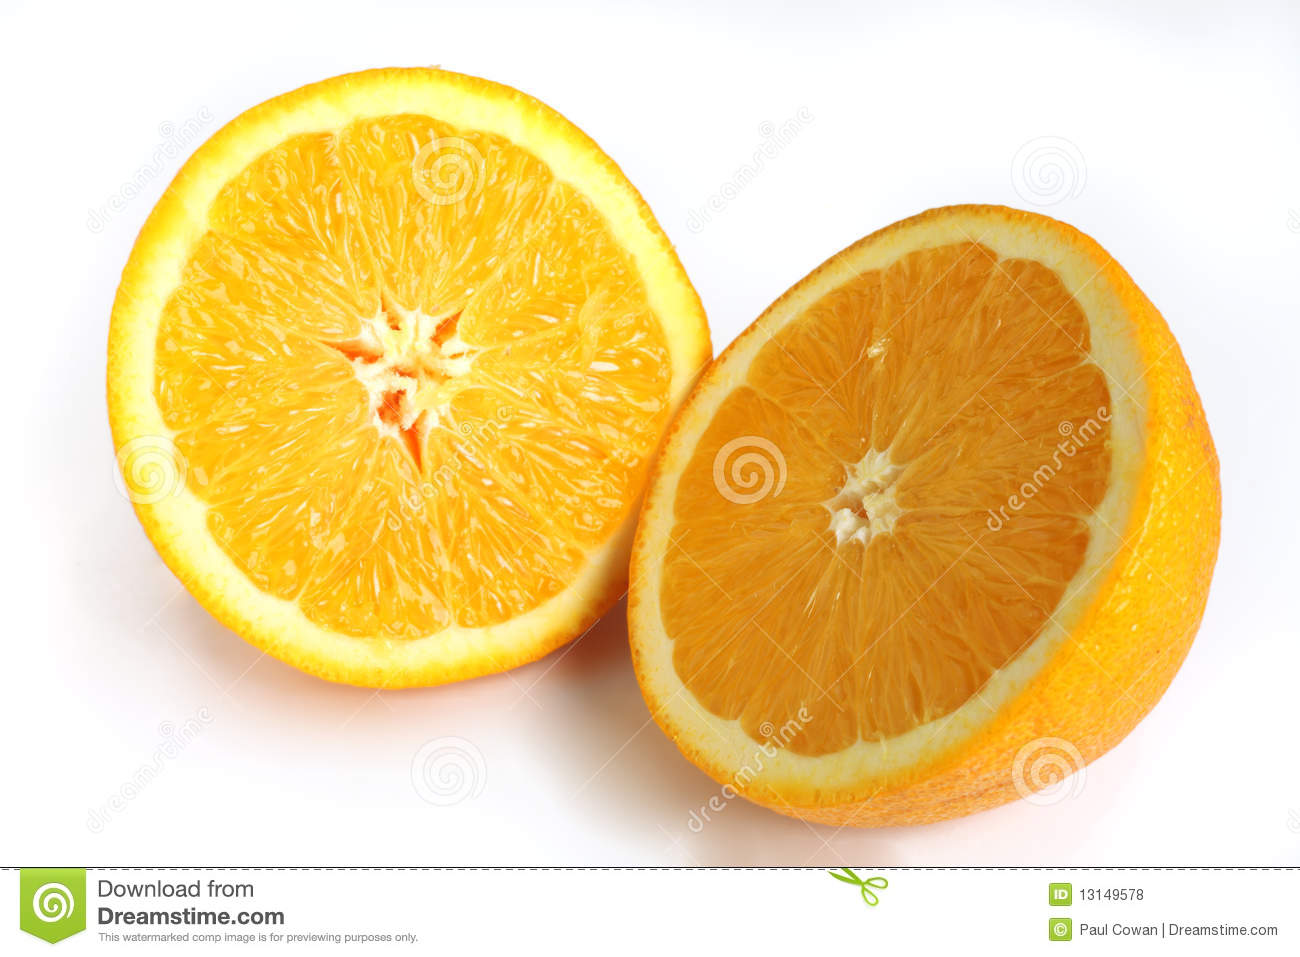 Navel Orange Cut In Half Royalty Free Stock Photos - Image: 13149578